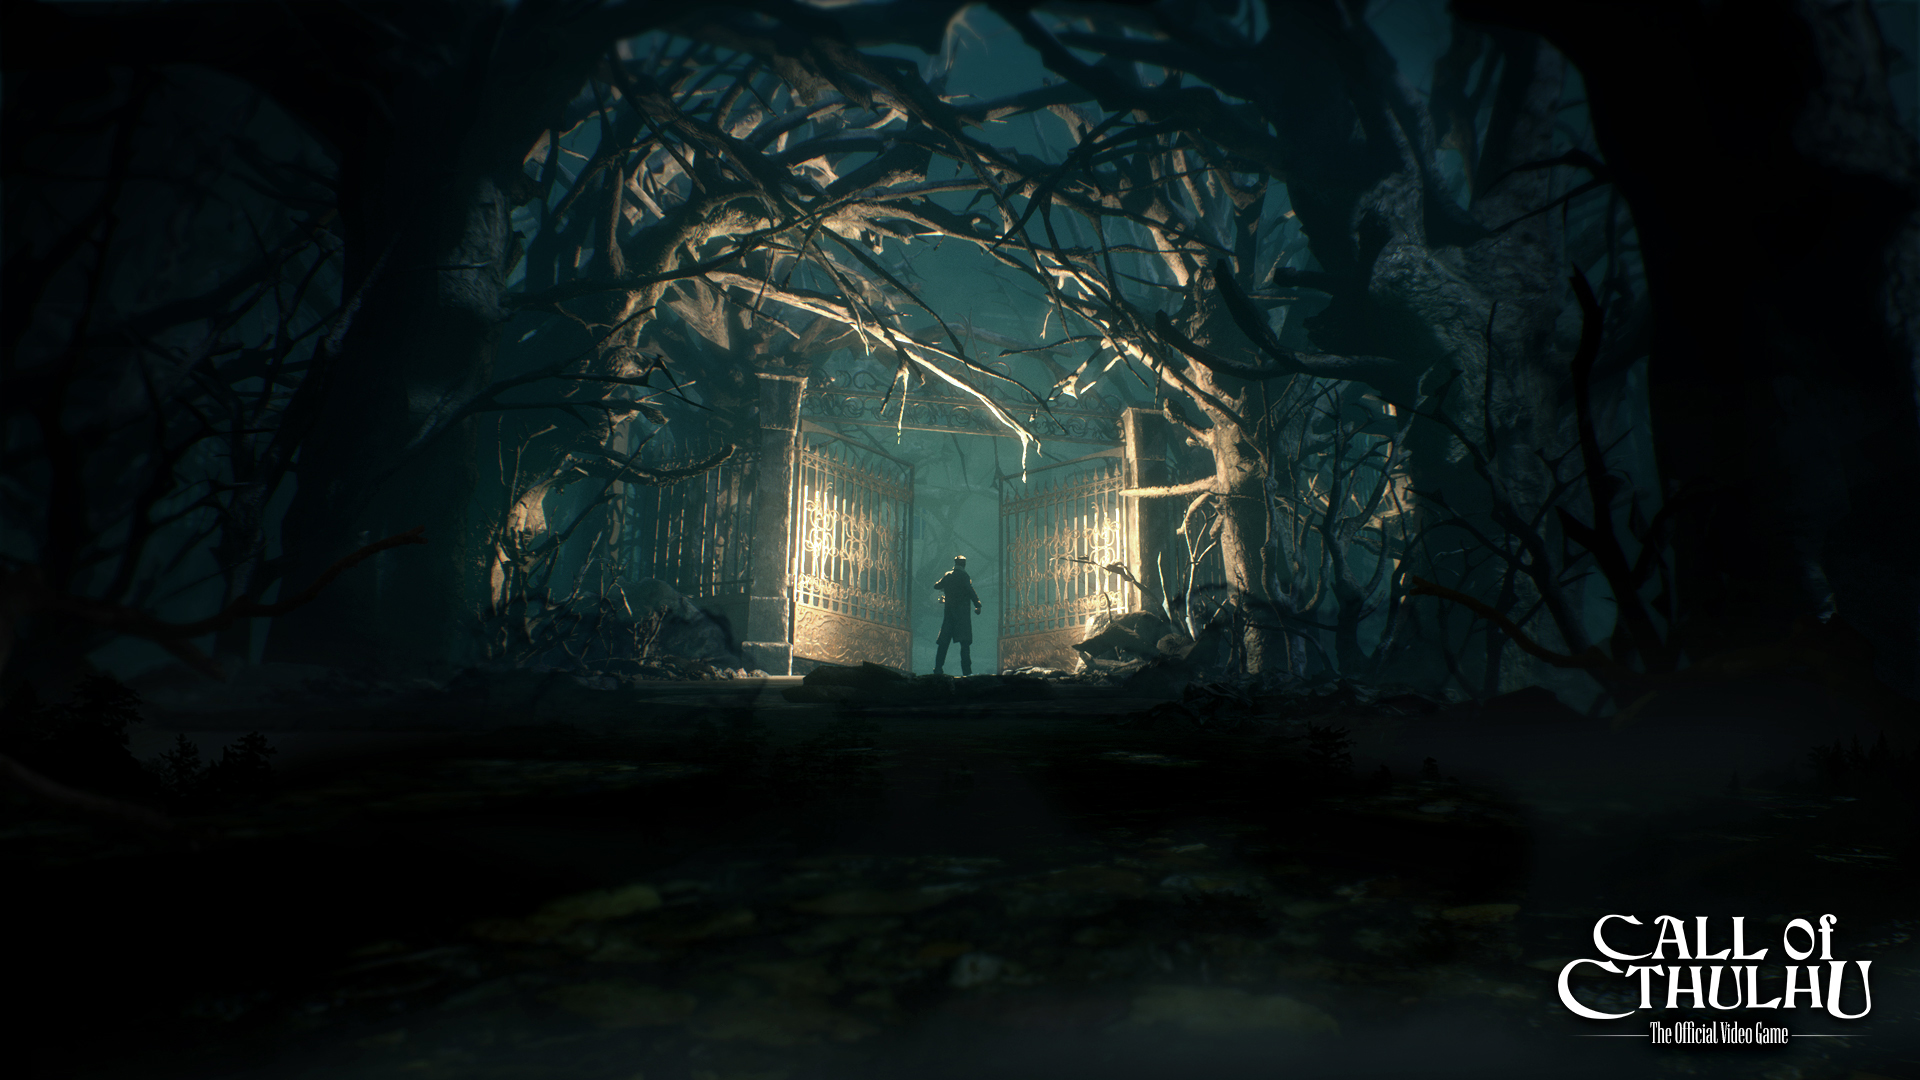 Call of Cthulhu Video Game Images Revealed